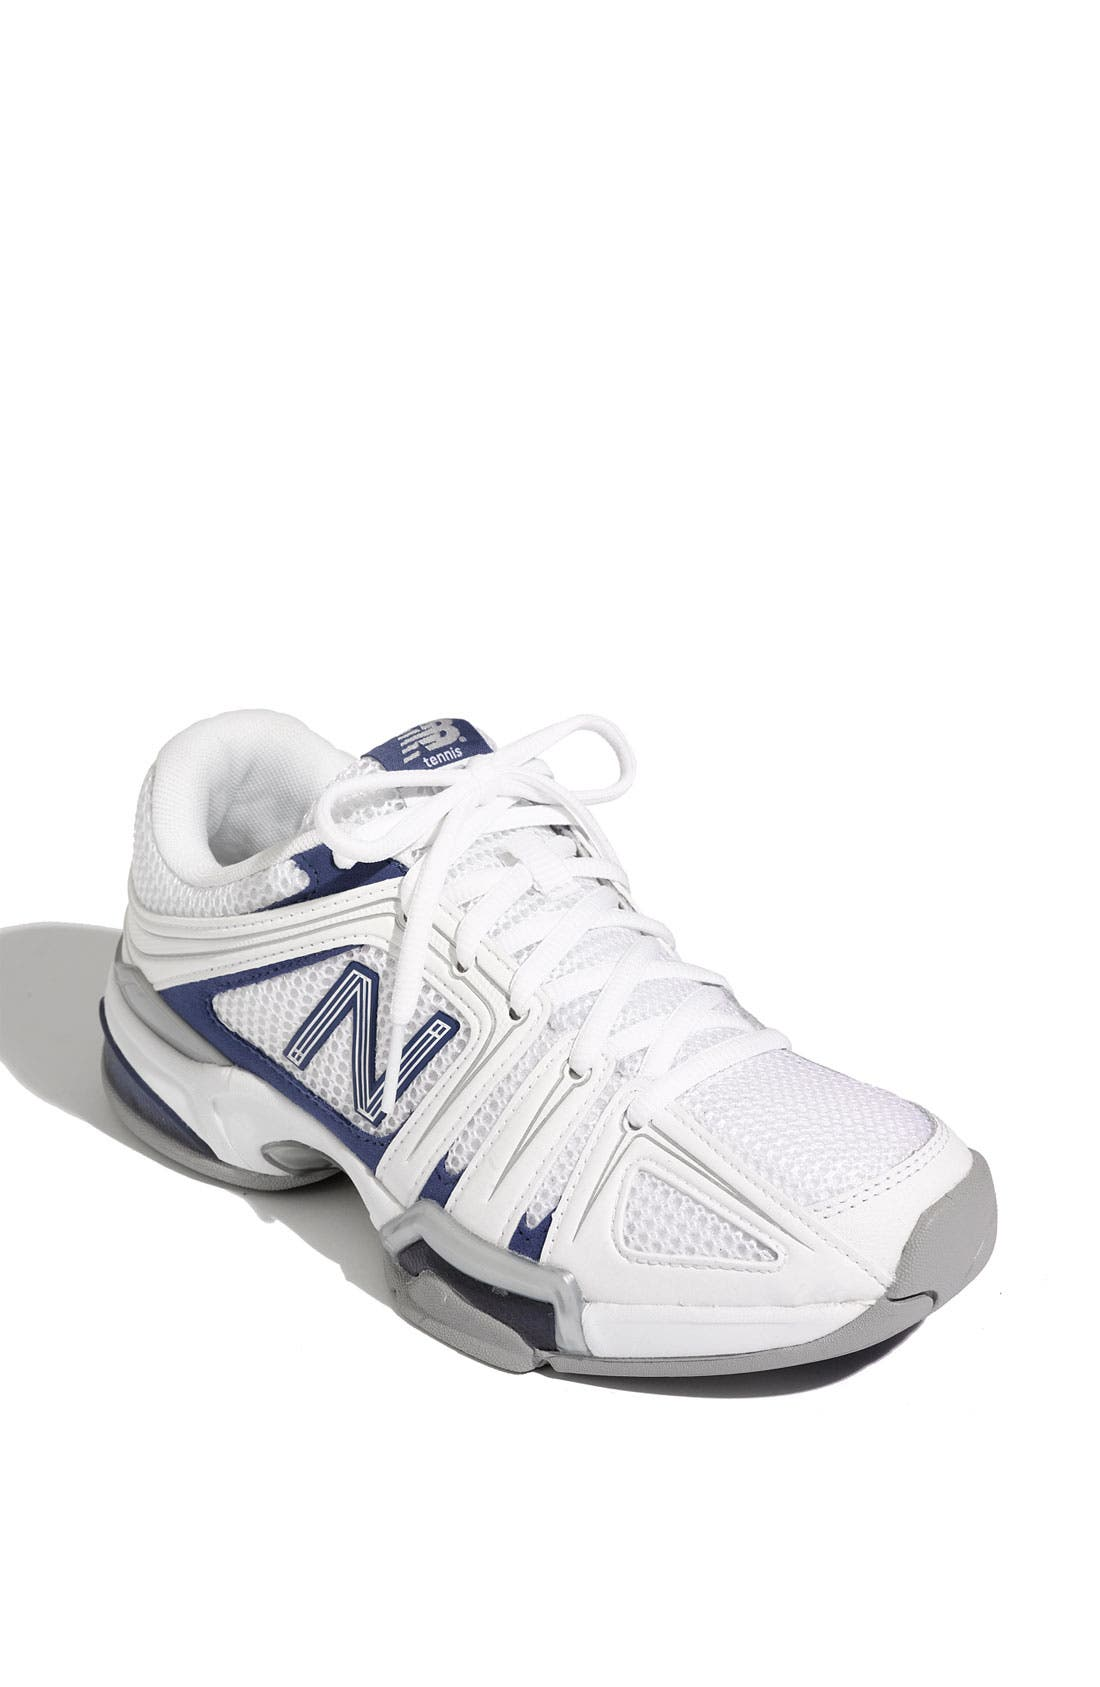 Main Image - New Balance '1005' Tennis Shoe (Women)(Retail Price: $114.95)